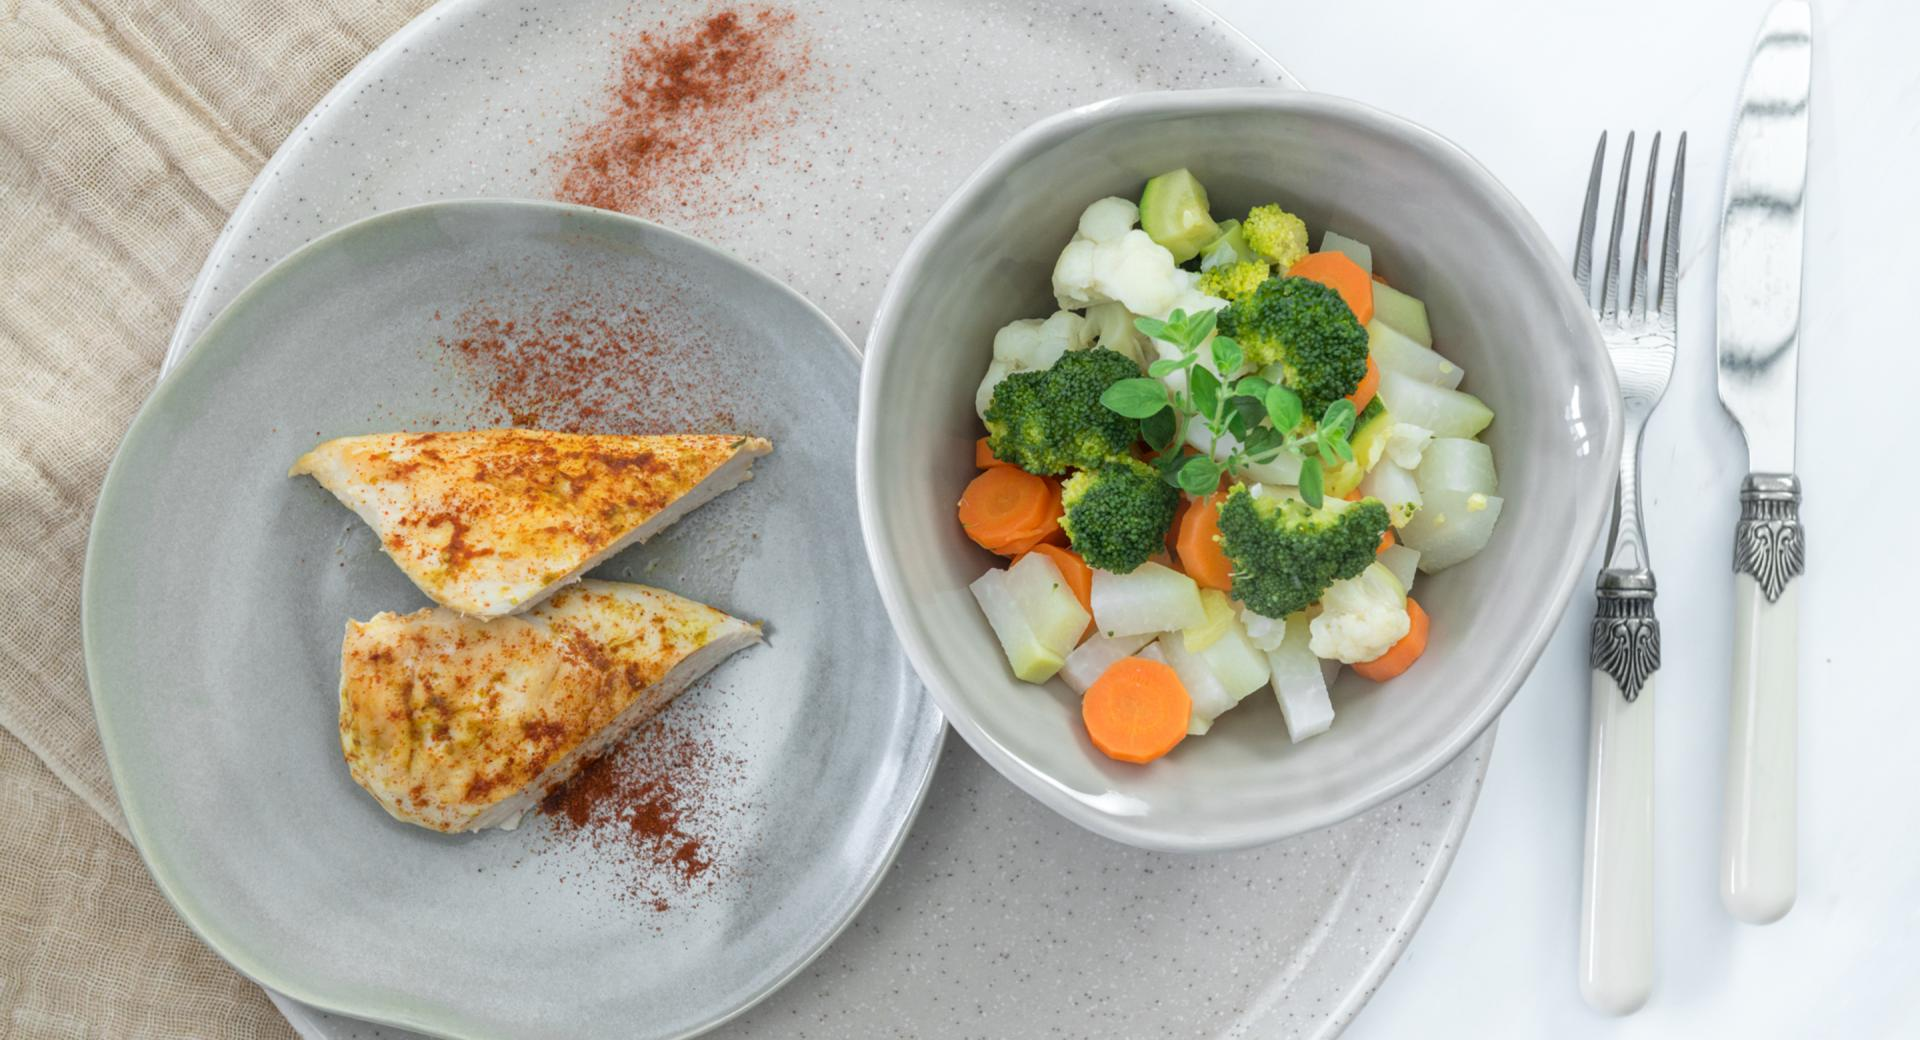 Chicken breast and seasonal vegetables